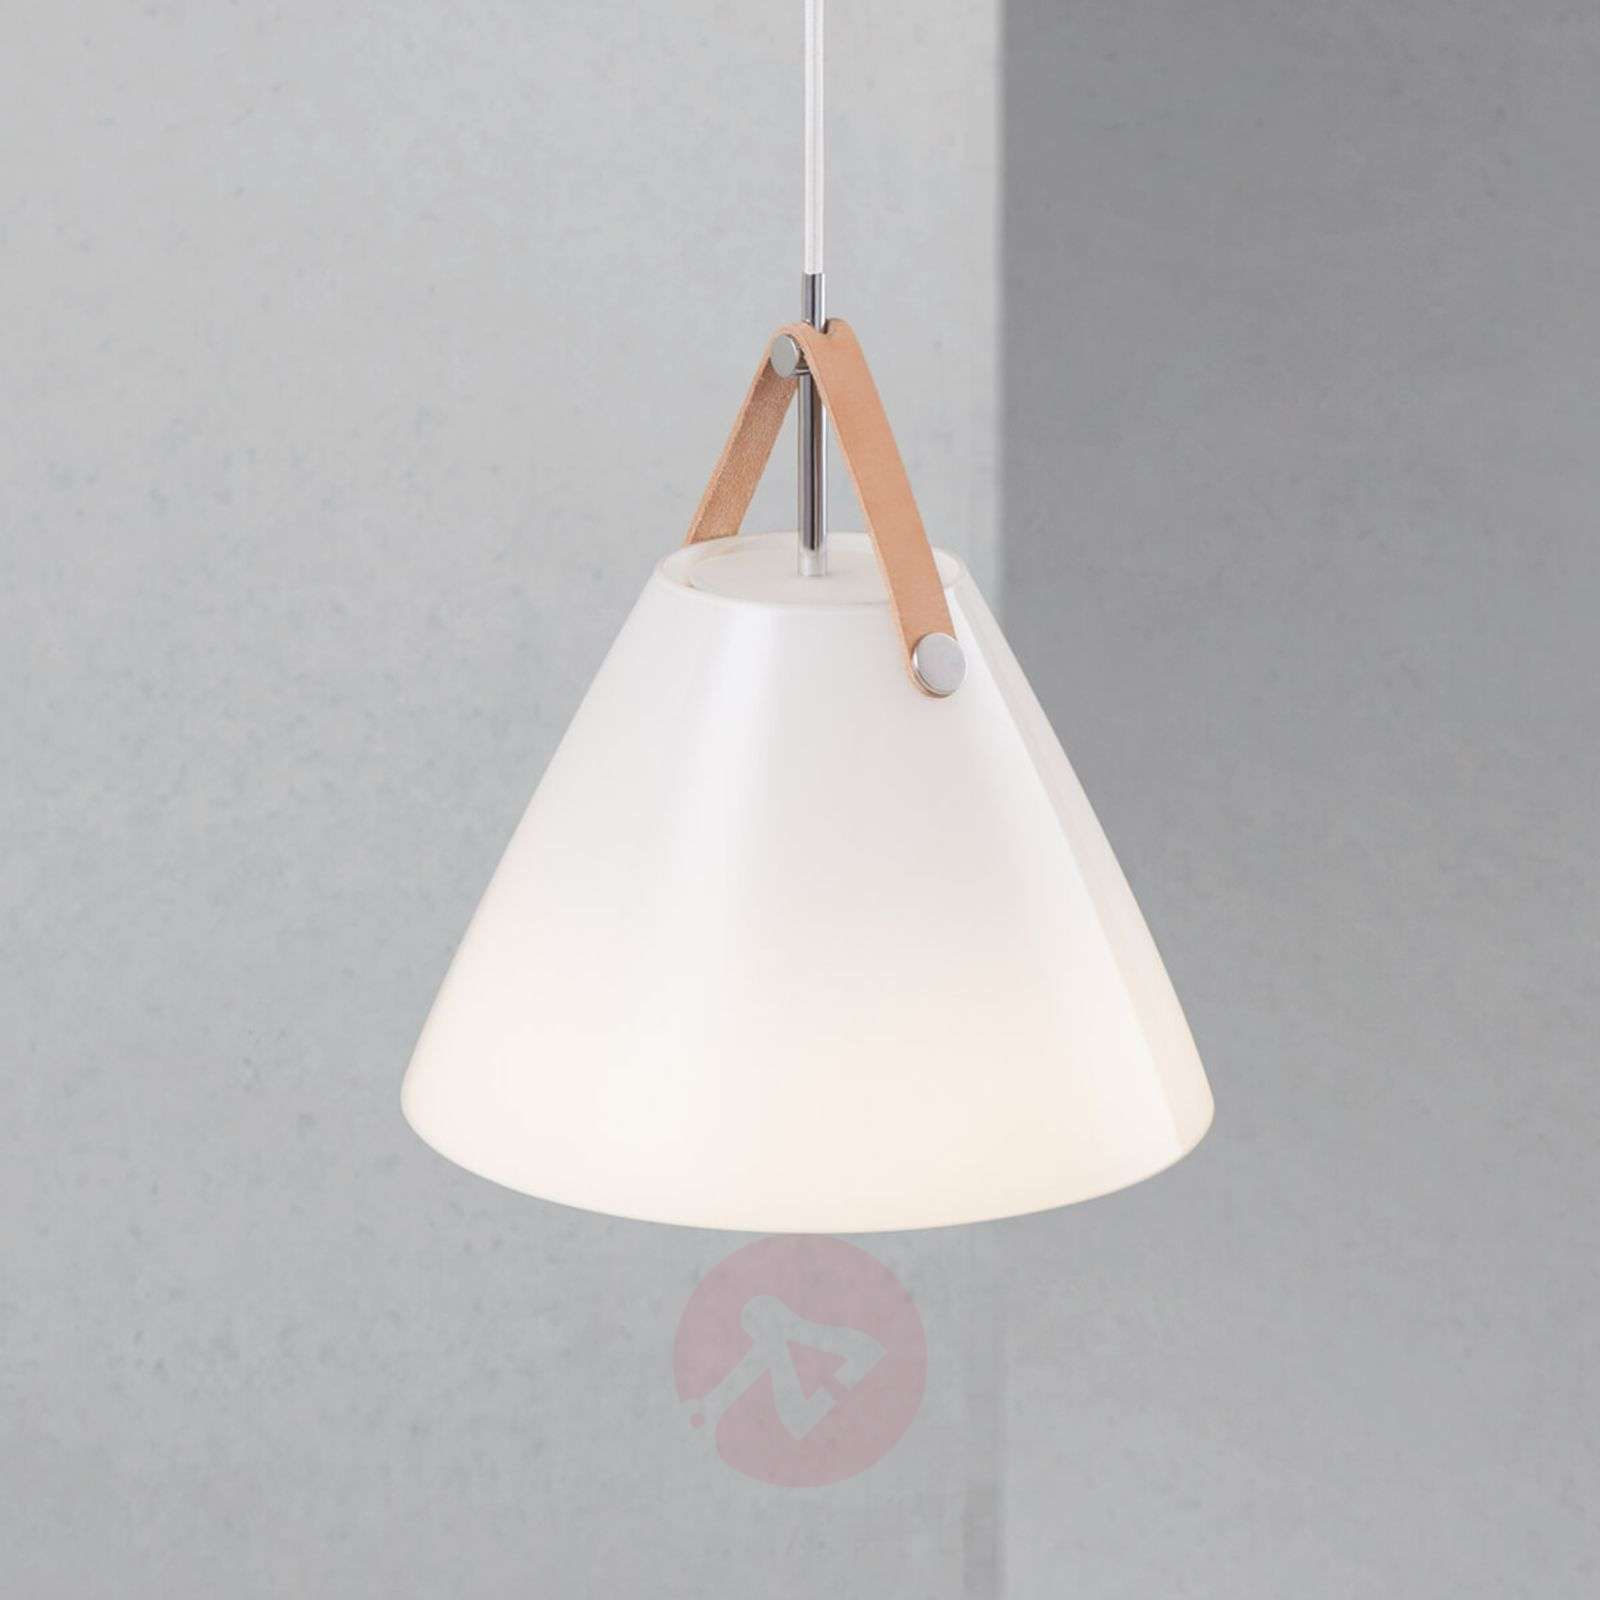 LED glass pendant light Strap 27 m, leather straps-7006017-01